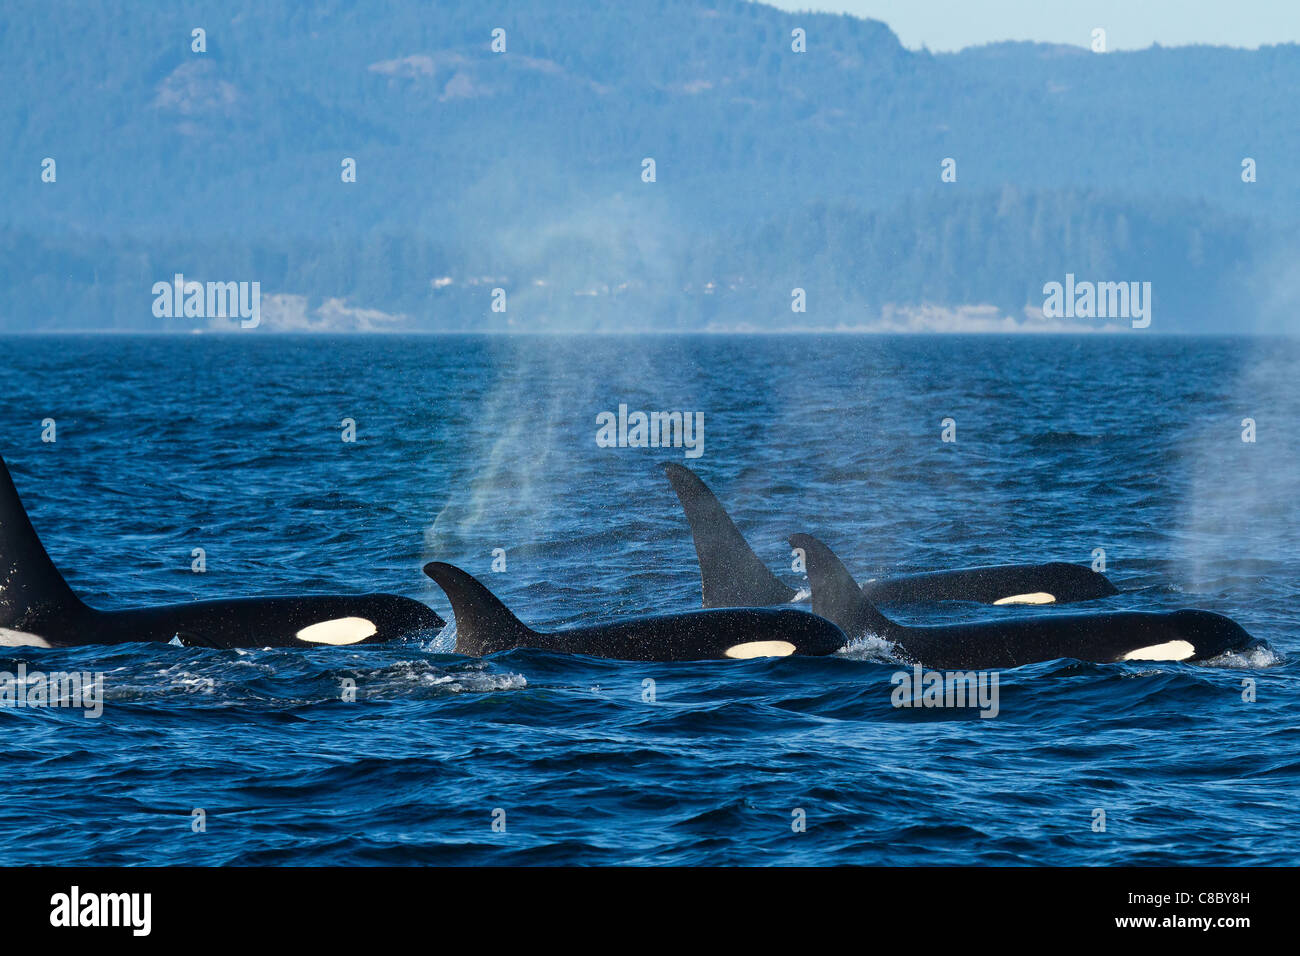 A pod of orcas(killer whales) in the Salish Sea - Stock Image